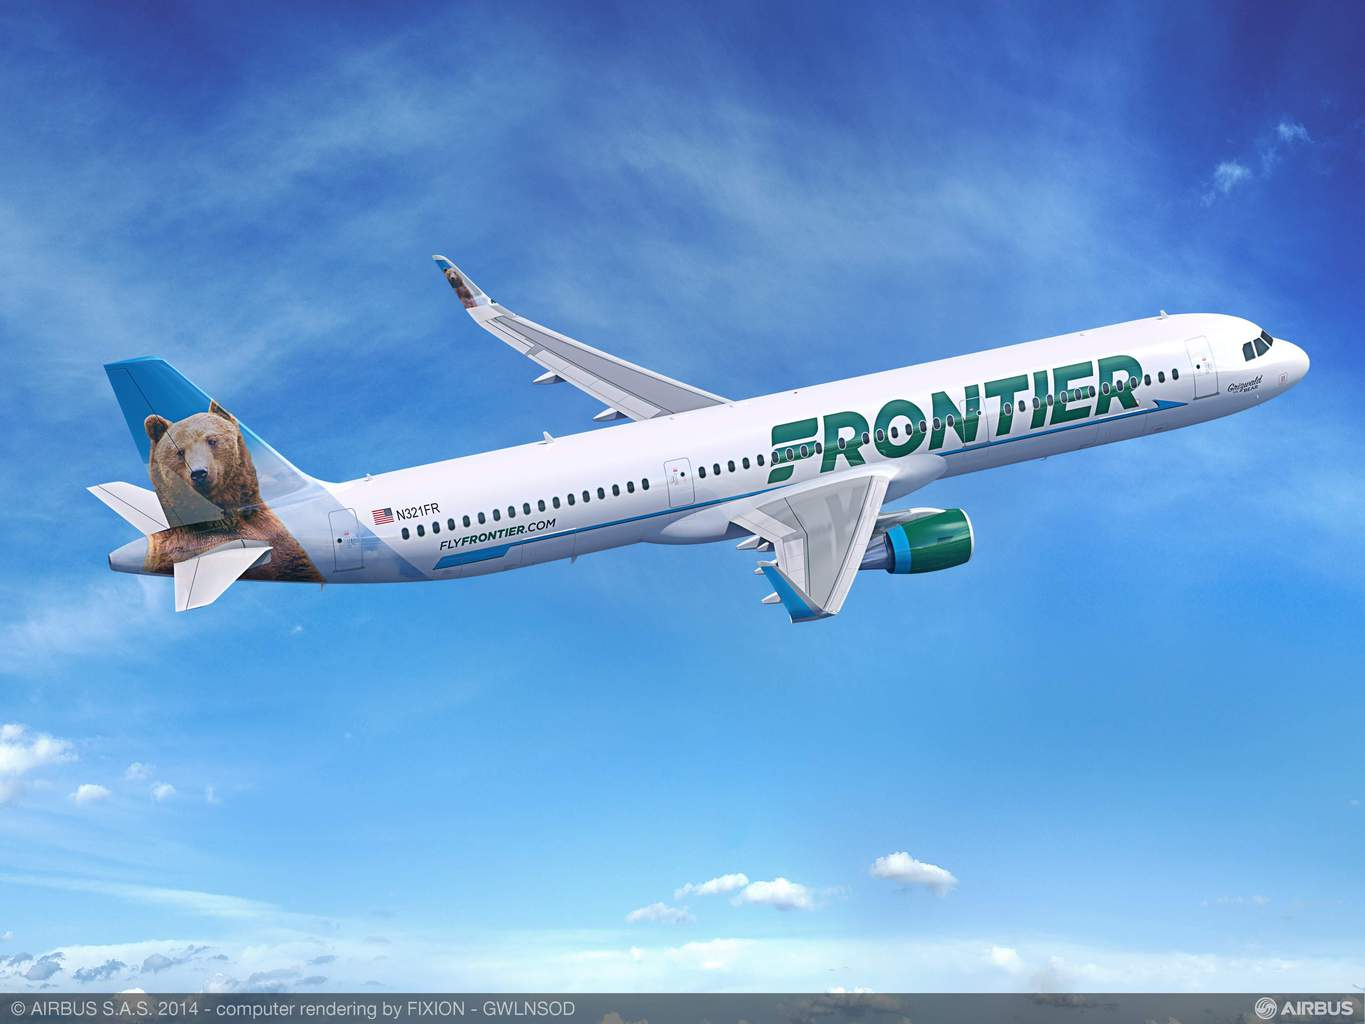 frontier airlines kids fly free program